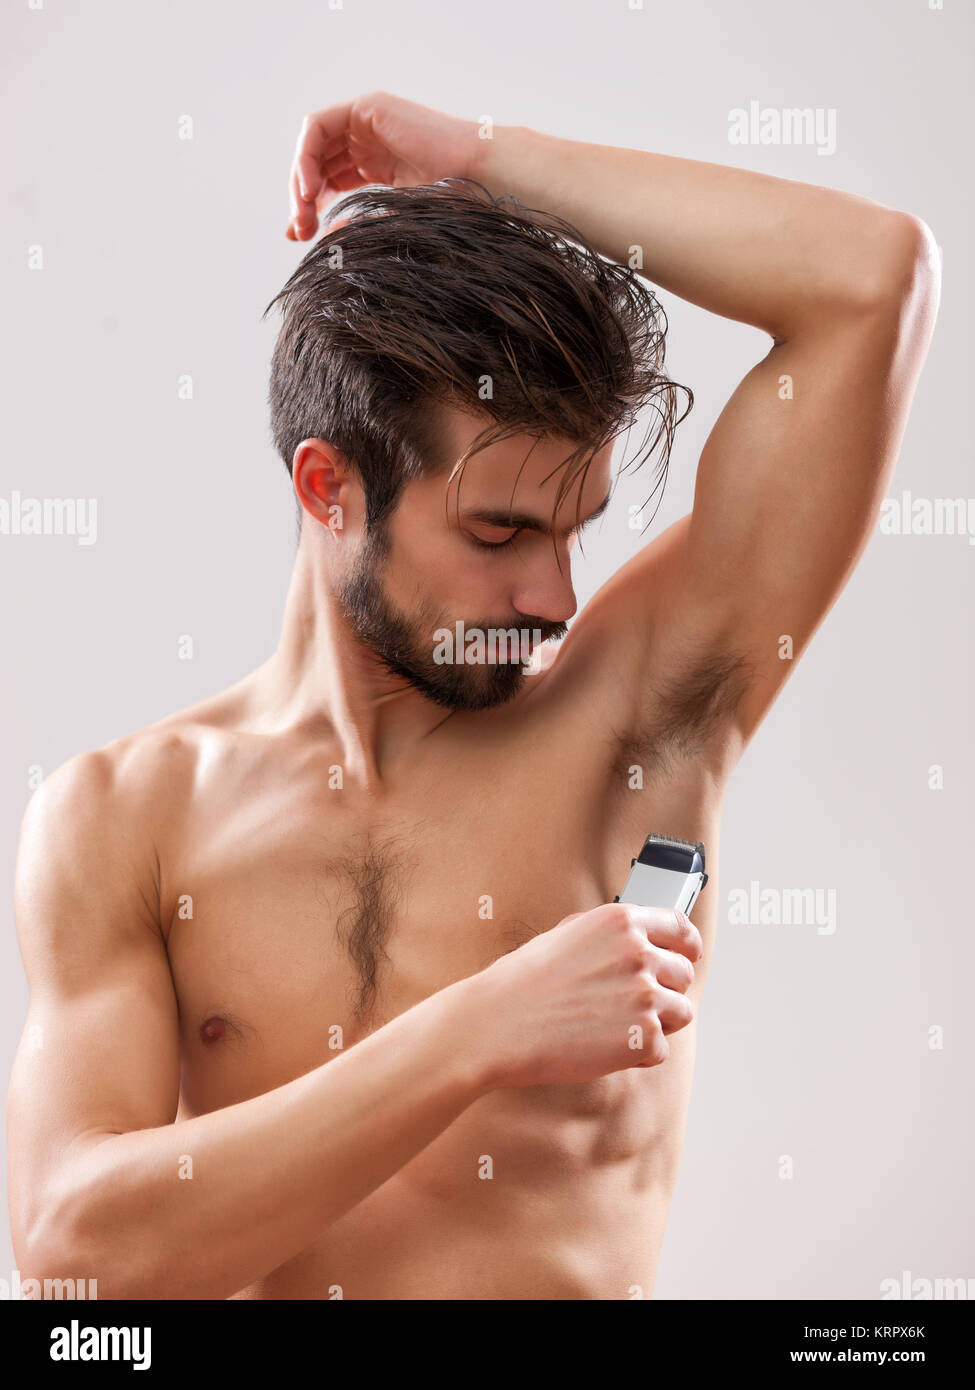 Young handsome man is shaving his armpit with electric razor. - Stock Image